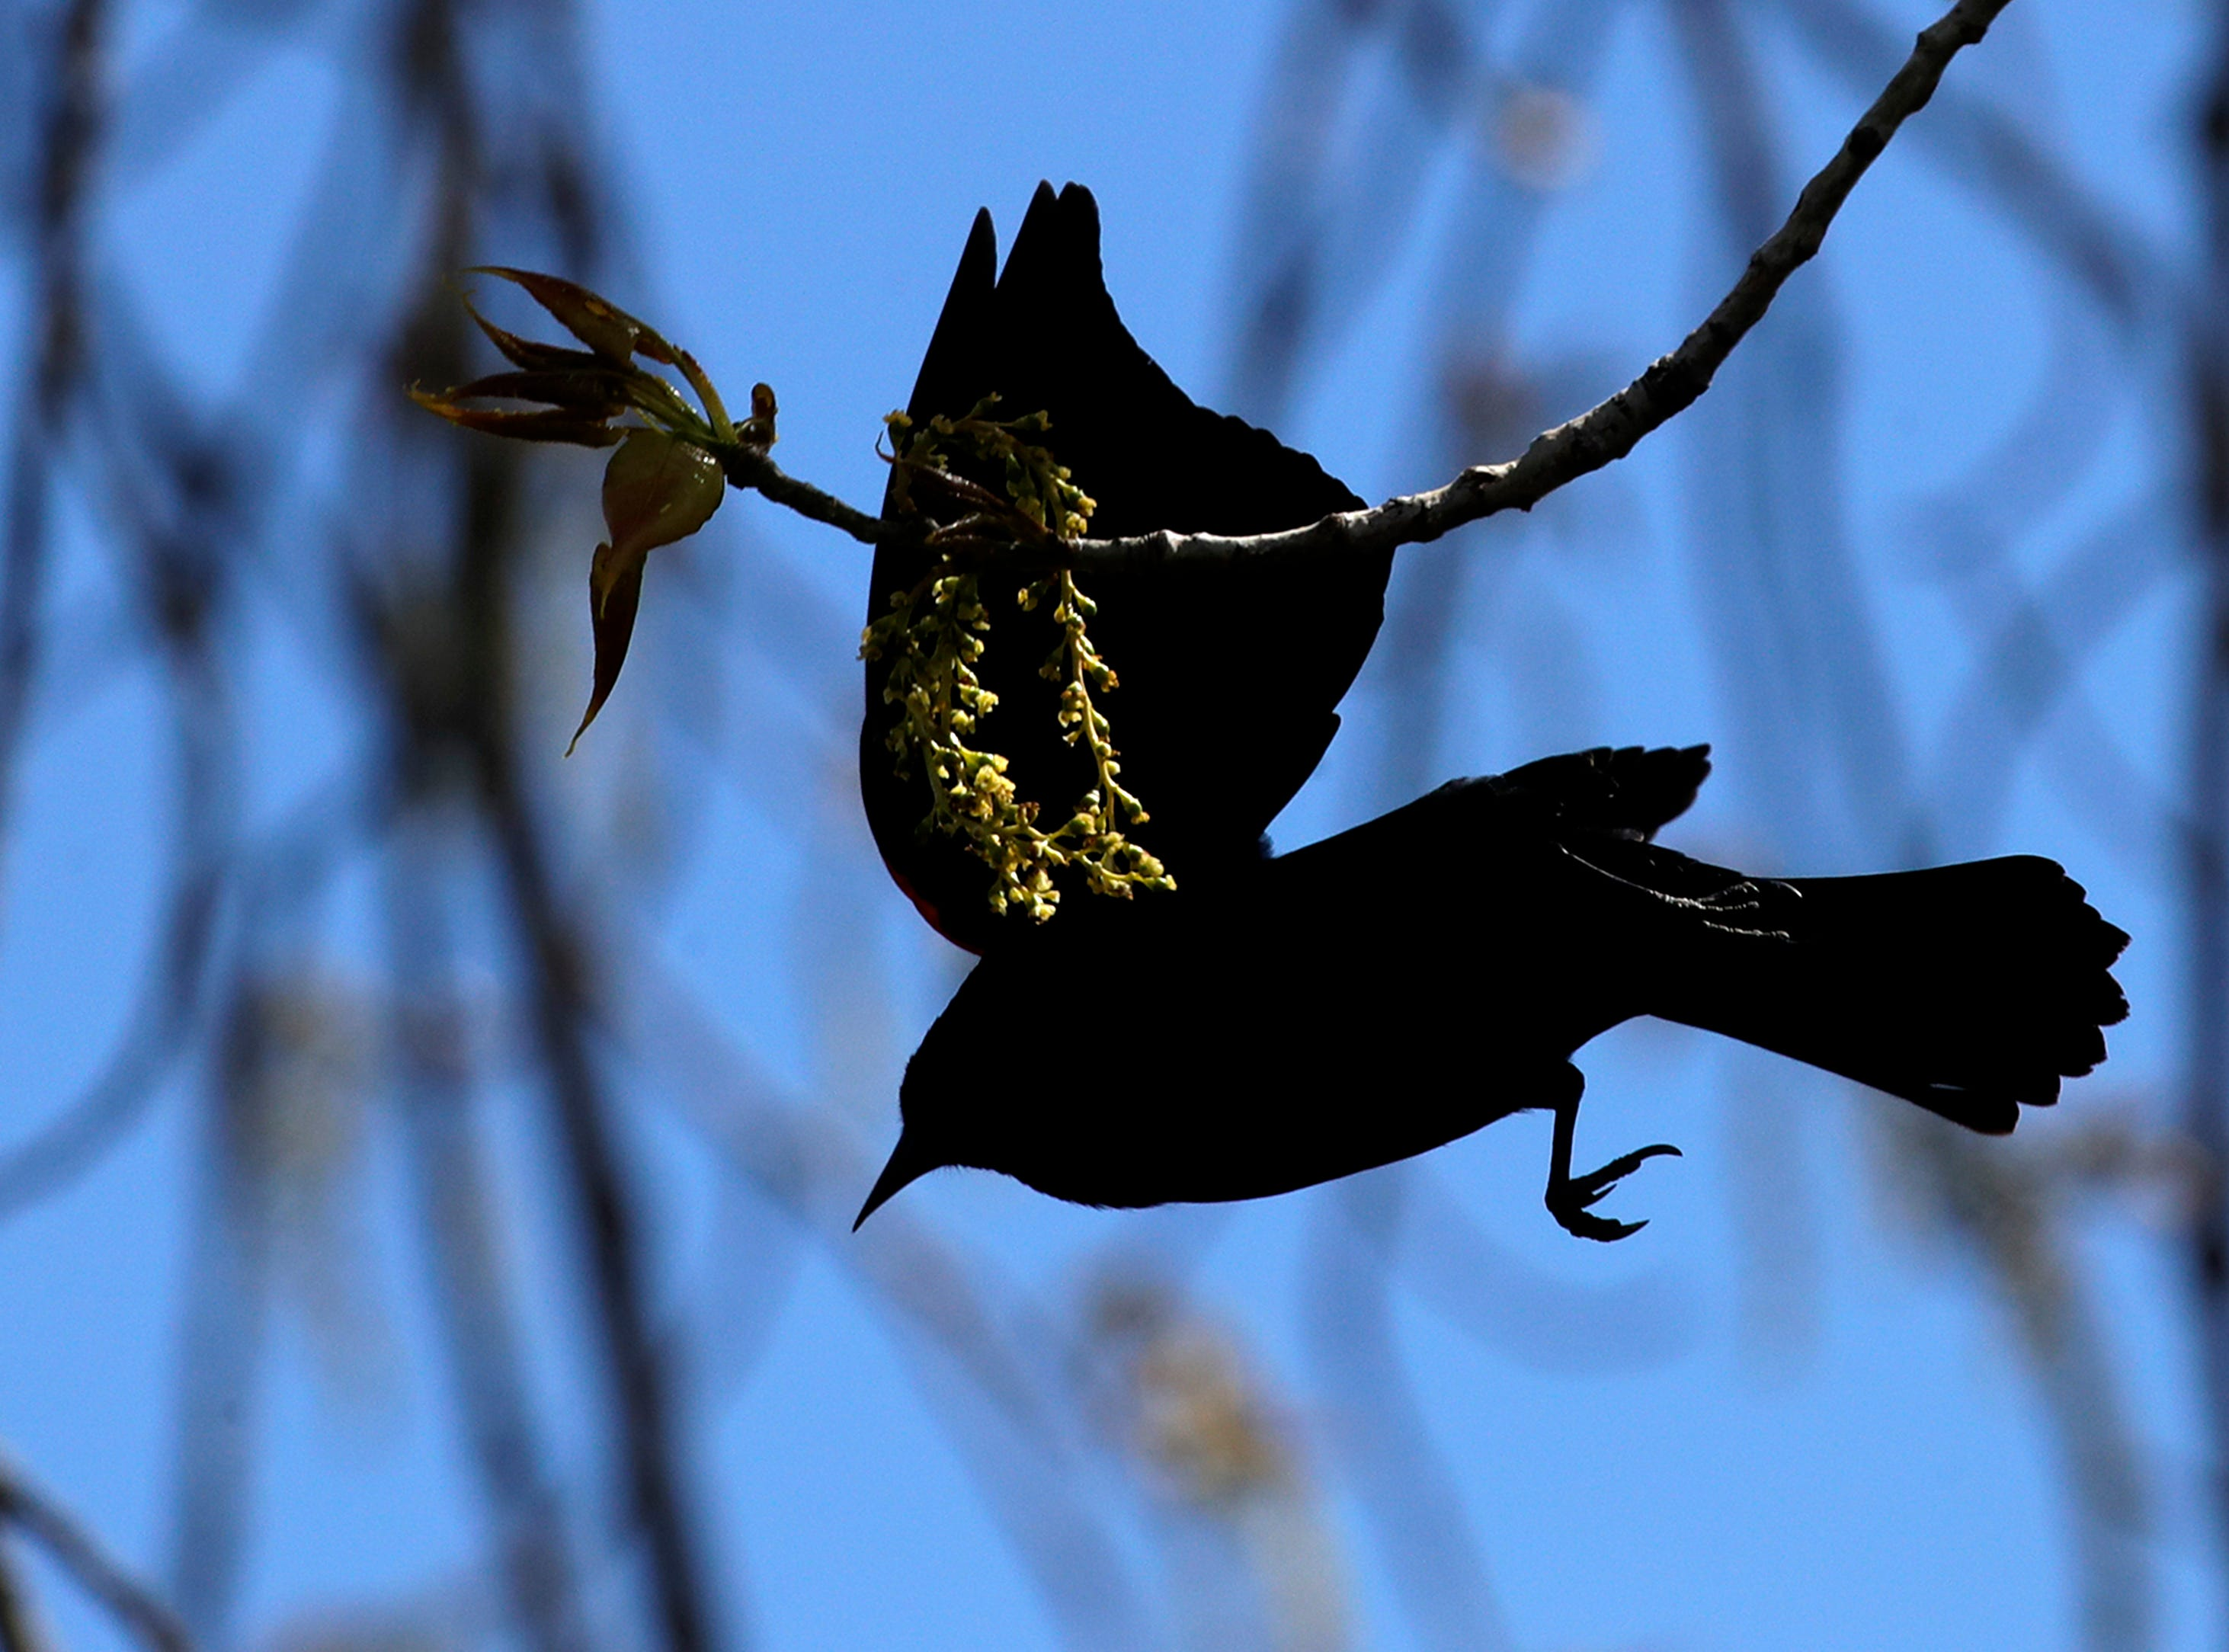 A red-winged blackbird is silhouetted among the branches of a tree along Lakeshore Avenue Friday, May 10, 2019, in Neenah, Wis. 